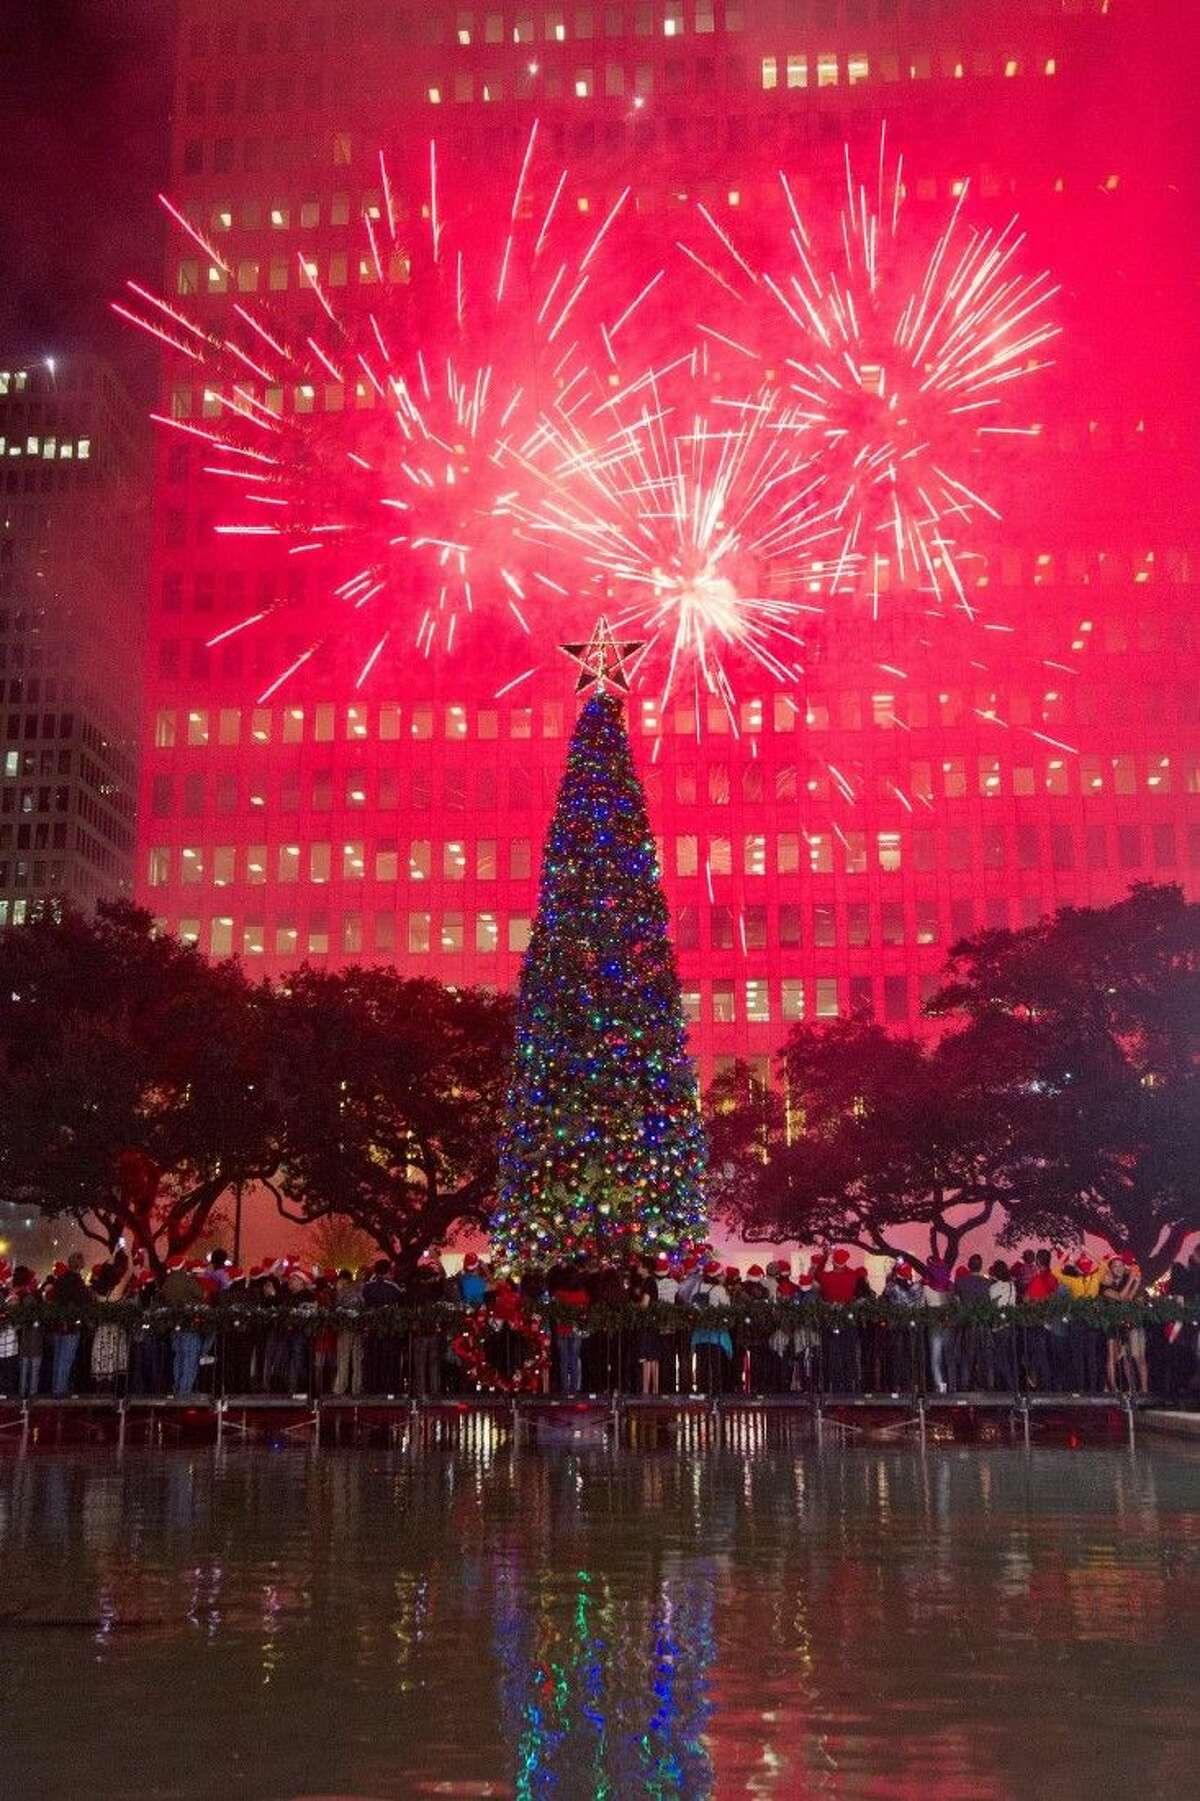 Ring in the season with the 96th Annual Mayor's Holiday Celebration and Tree Lighting Presented by Reliant, an NRG company, Friday, Dec. 4, at City Hall in Hermann Square from 6-8 p.m.